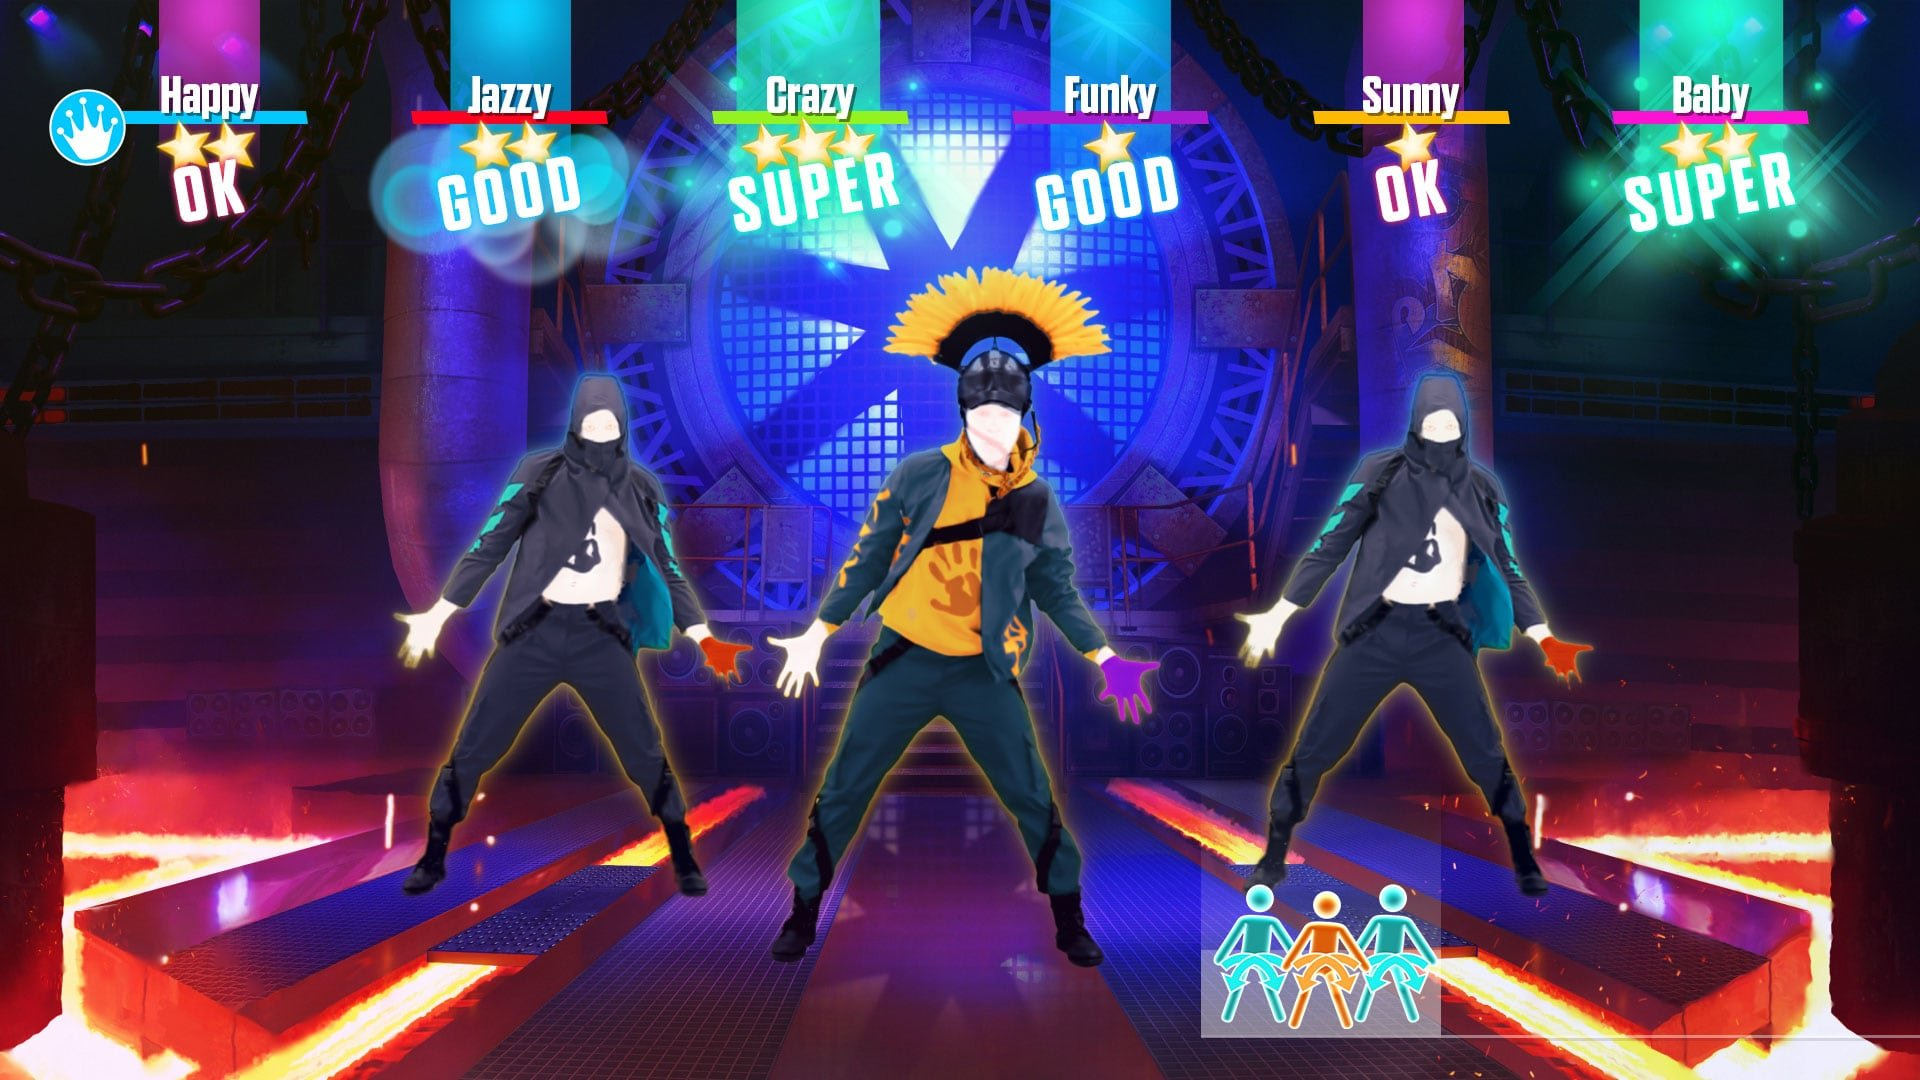 gameplay for Just Dance 2019